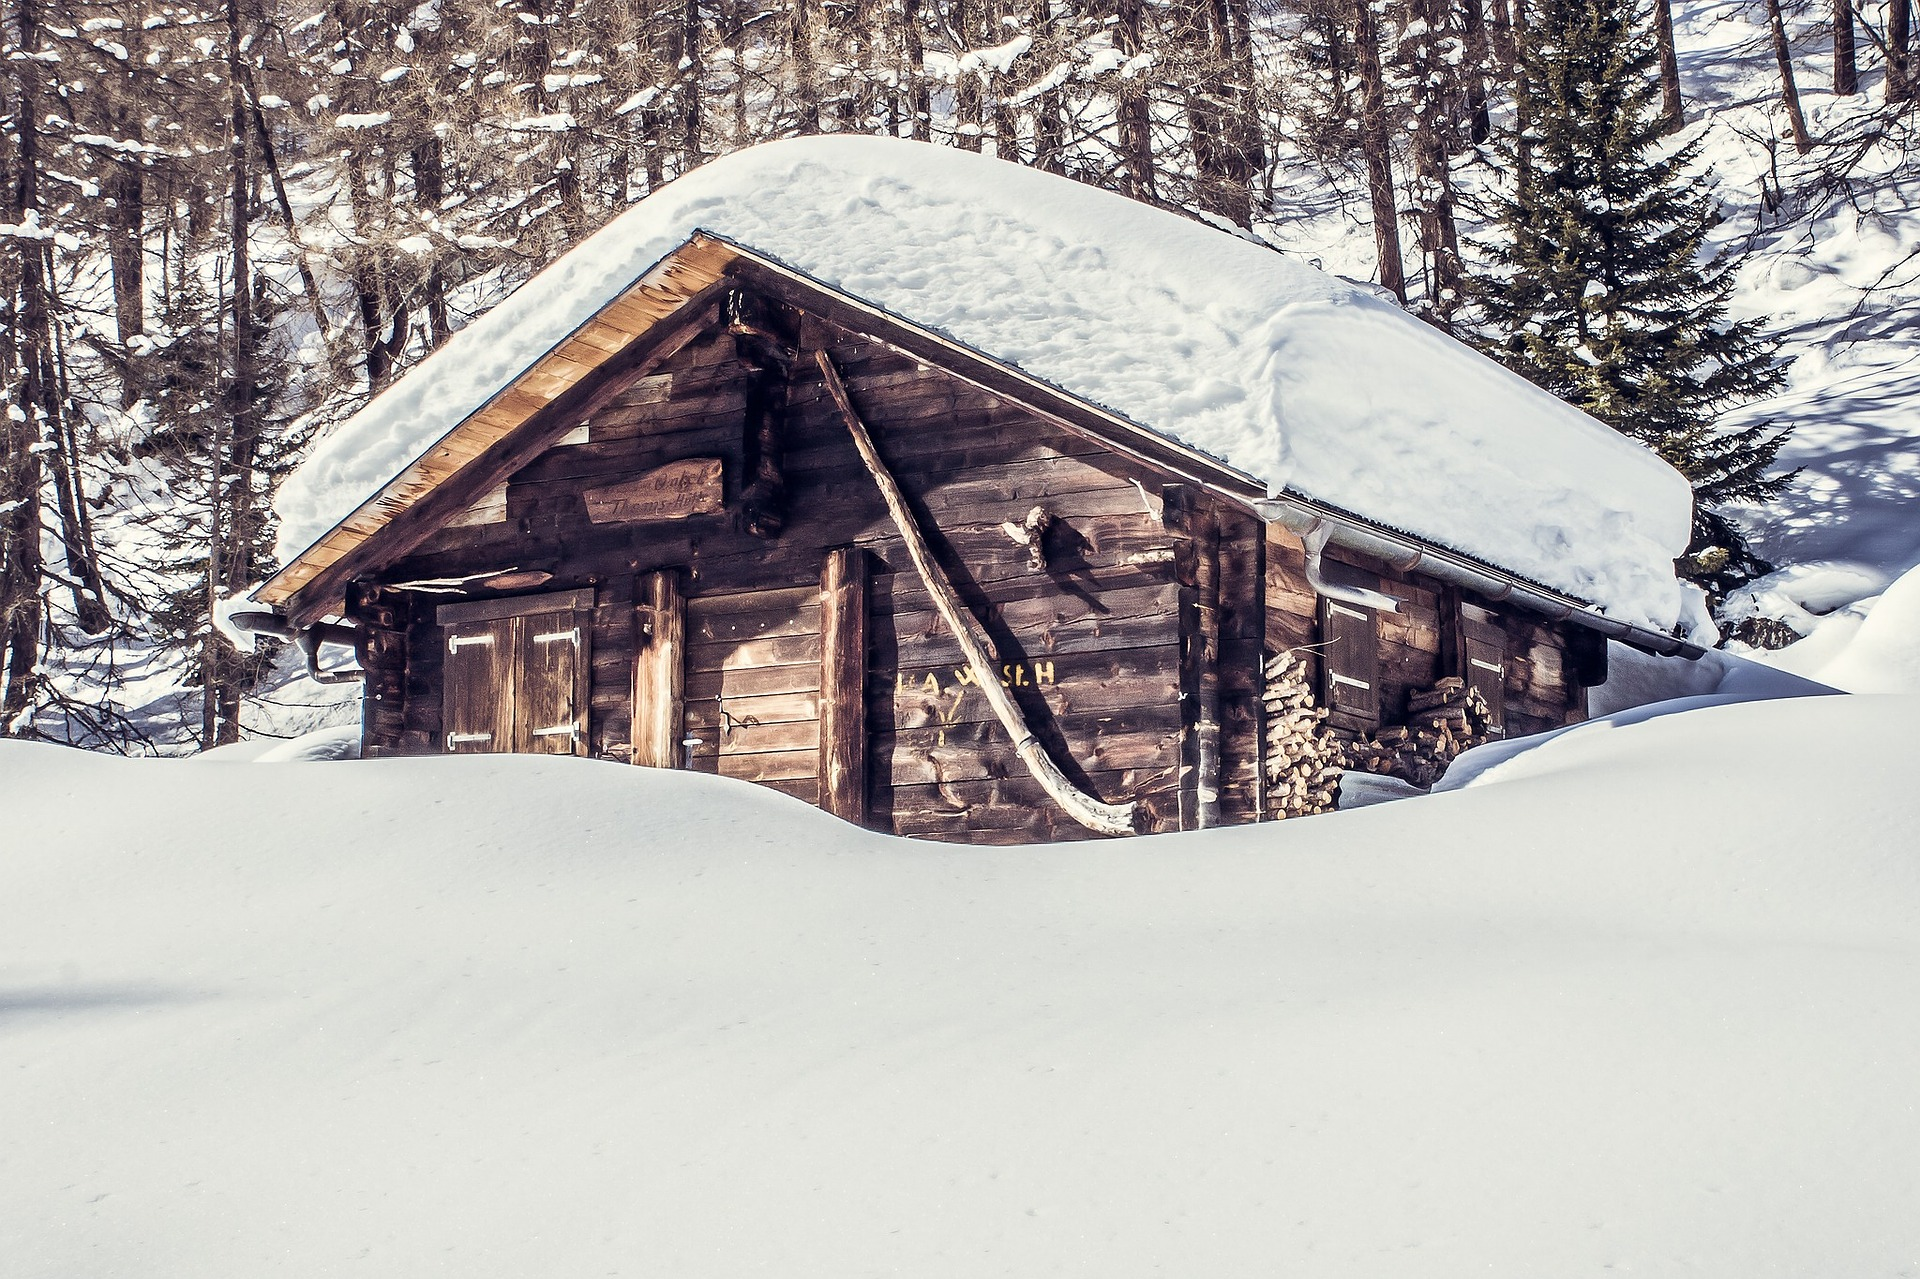 Timber Frame log cabin winter